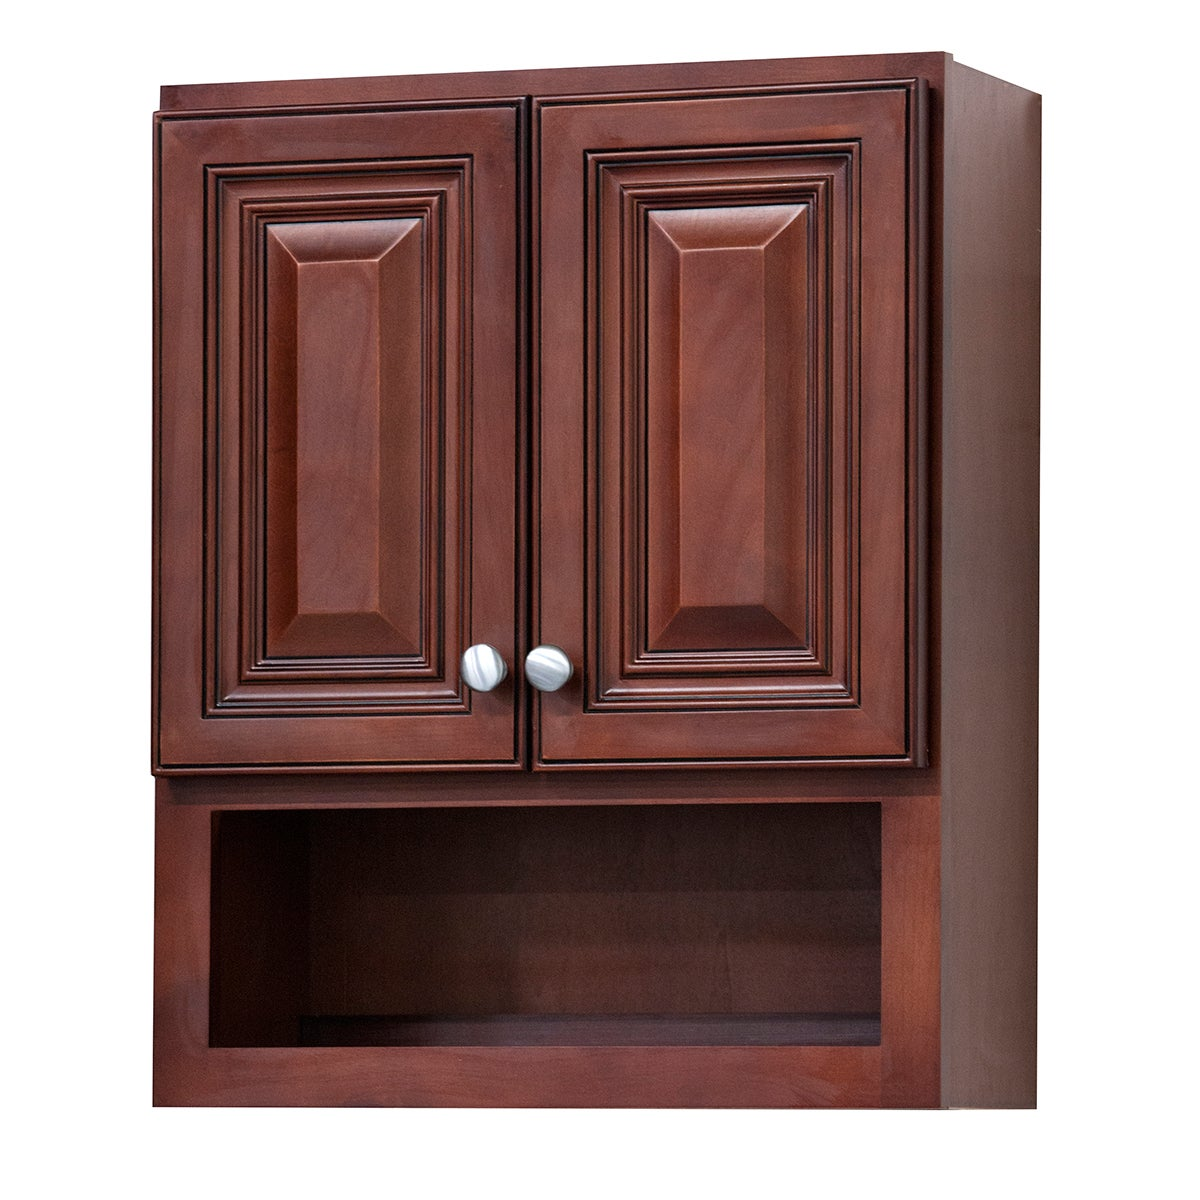 Grand Reserve Cherry Bathroom Wall Cabinet Overstock Shopping Big Discounts On Bath Cabinets